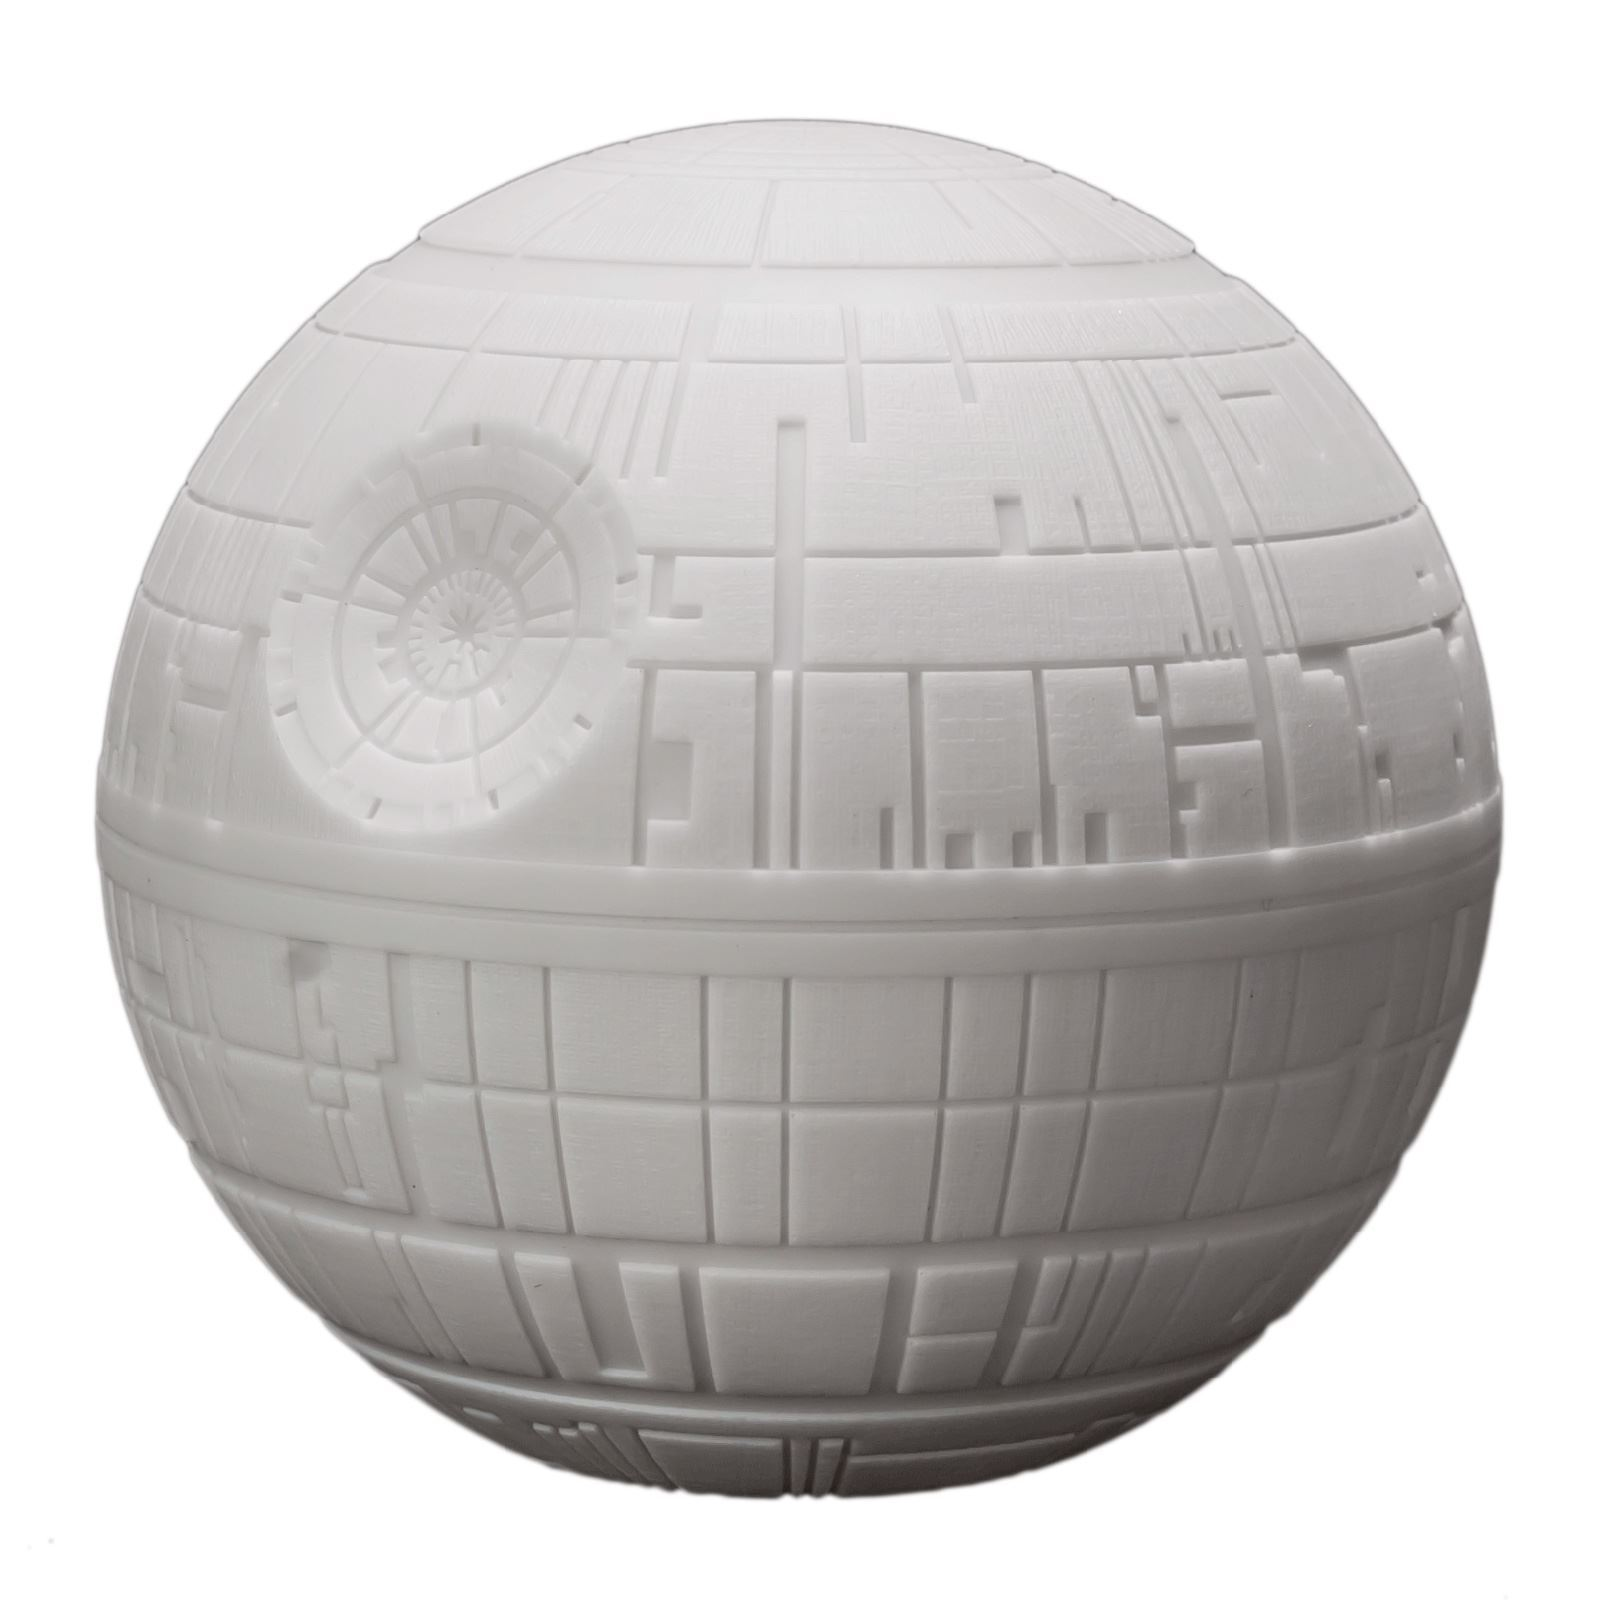 Star Wars LED Light - Death Star image